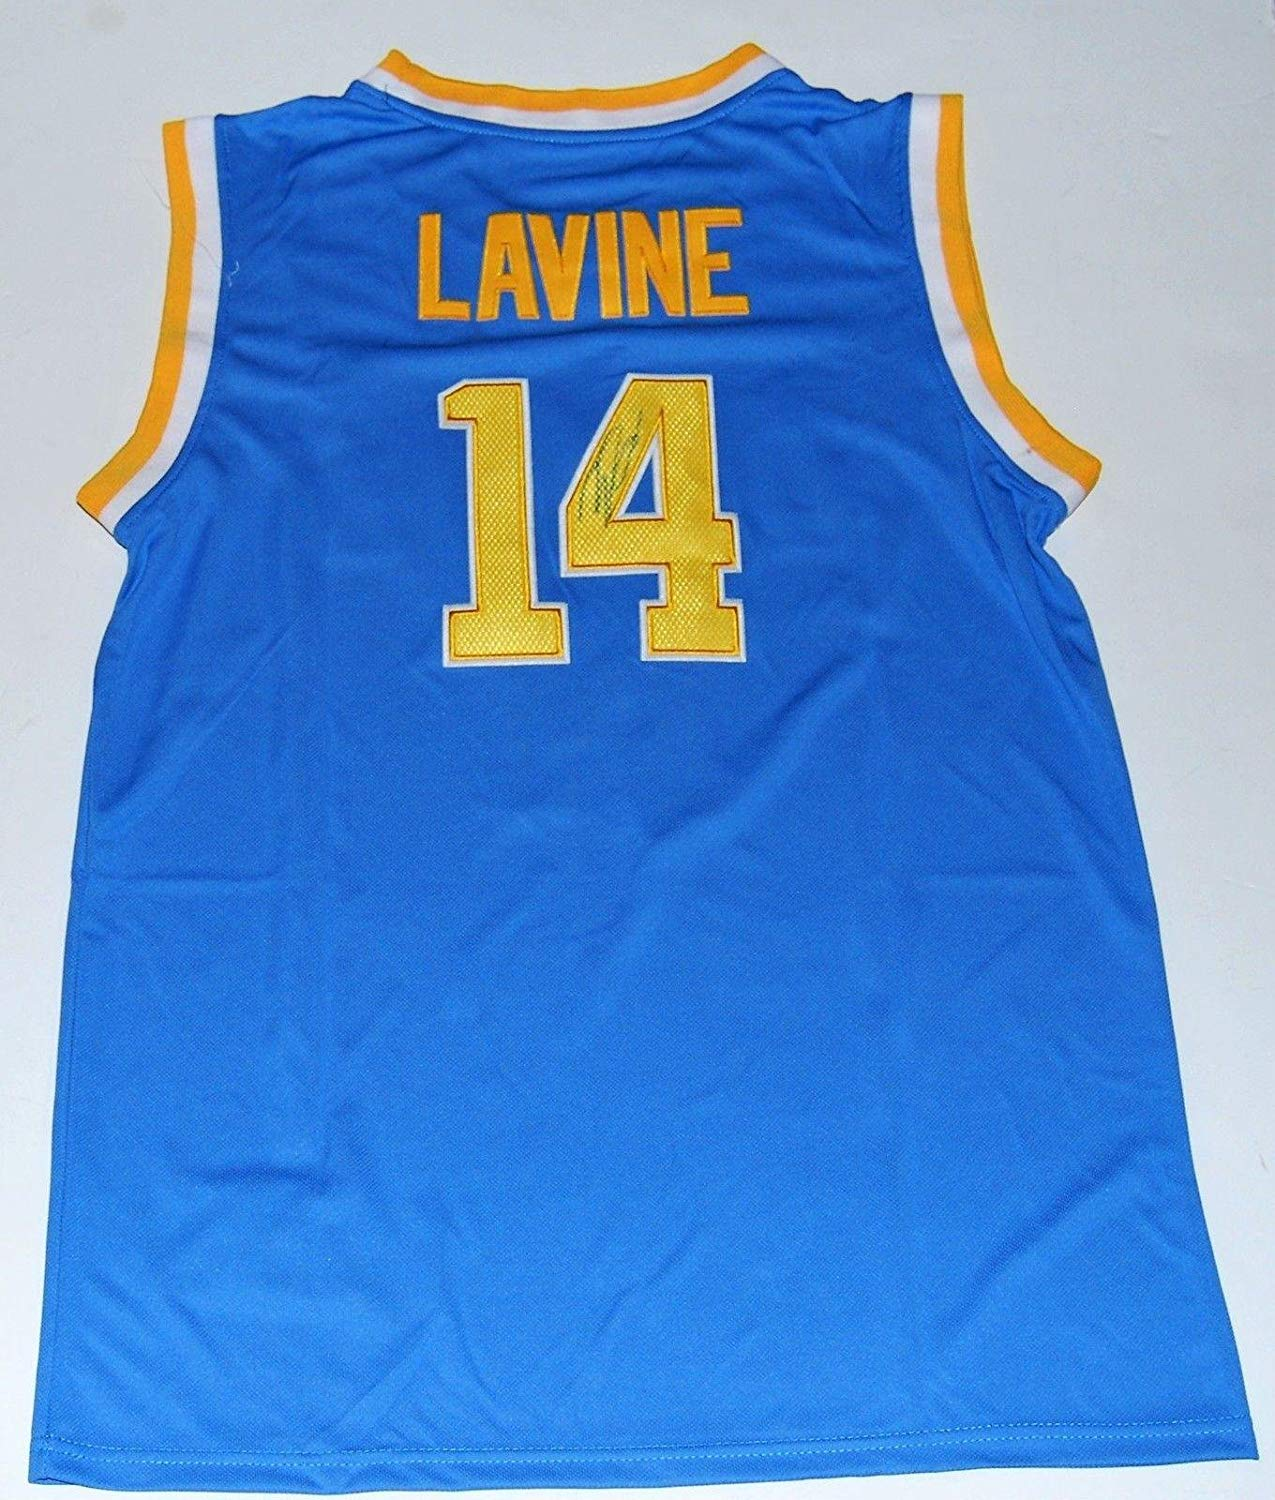 e06406bd3 Get Quotations · Zach LaVine Signed Jersey - UCLA BRUINS)     W COA -  Autographed College Jerseys